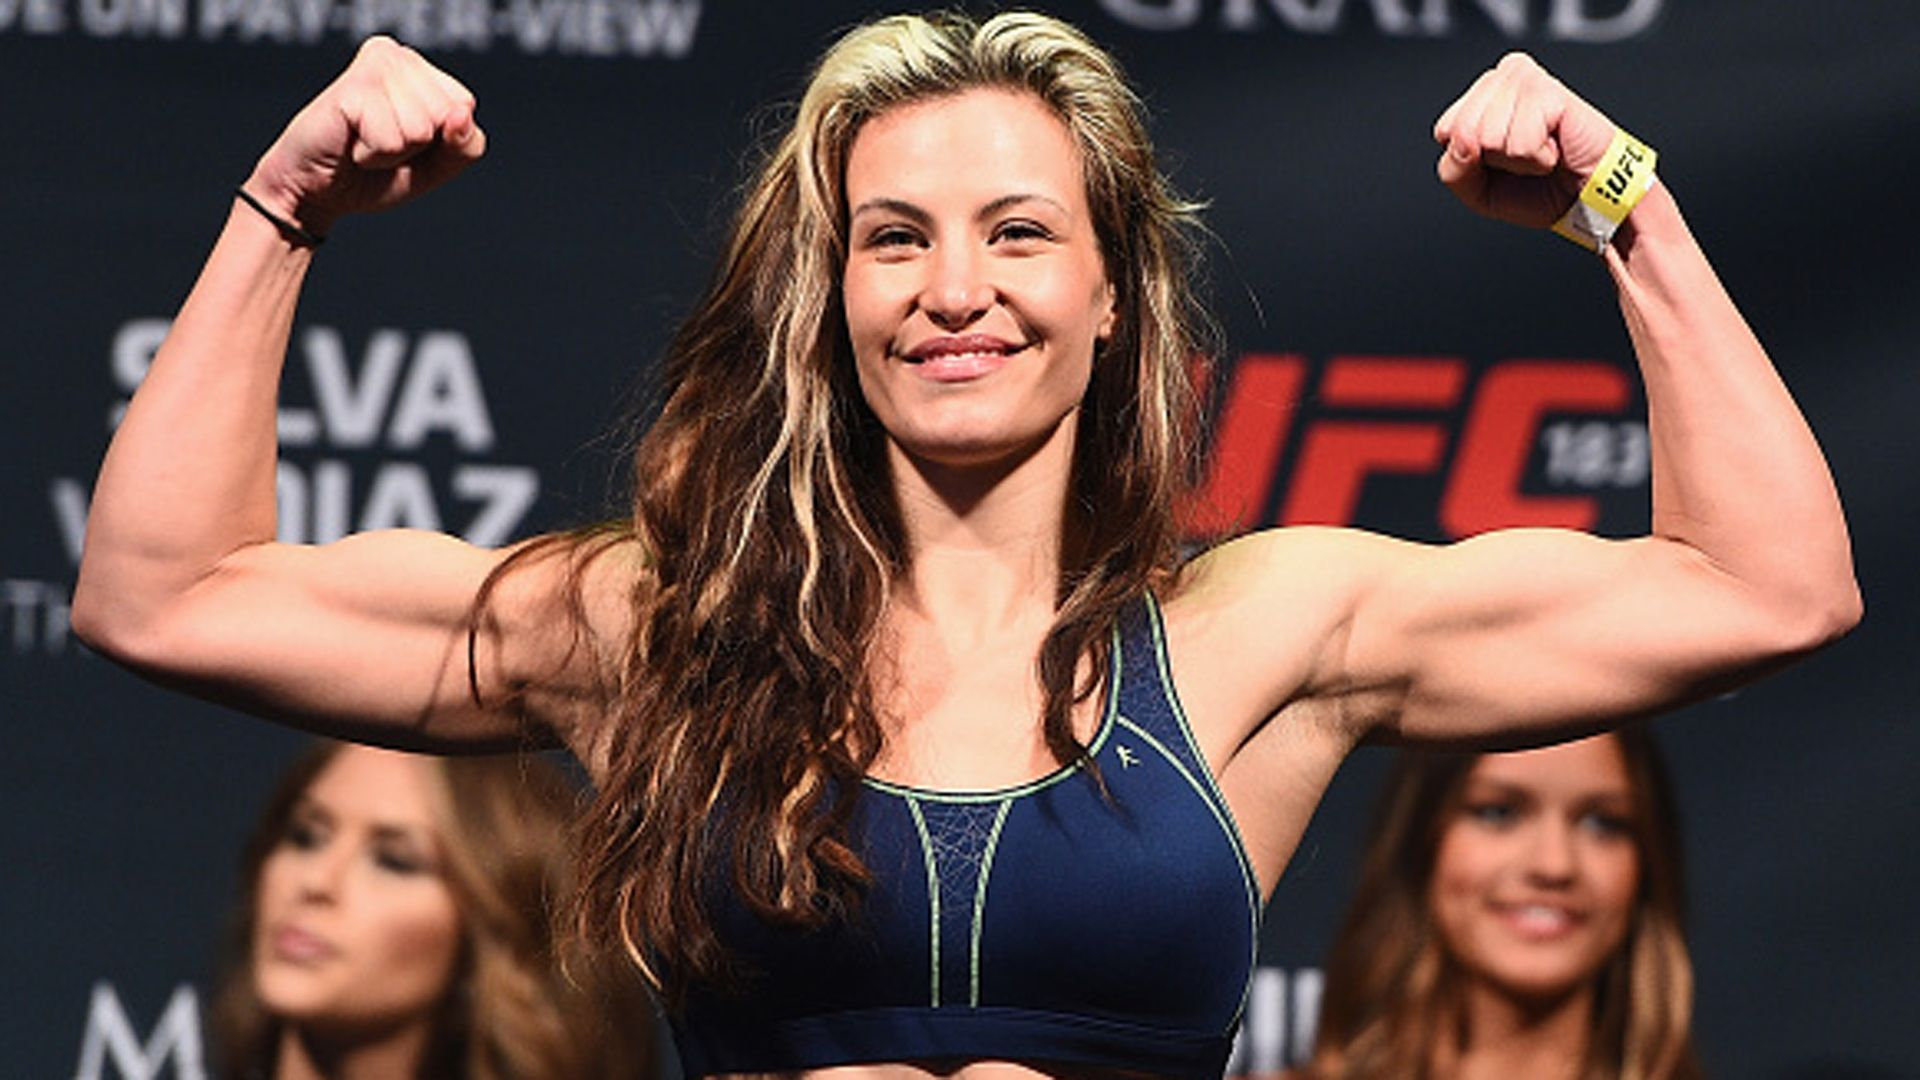 Ufc 196 Results Miesha Tate Chokes Holly Holm Unconscious To Win